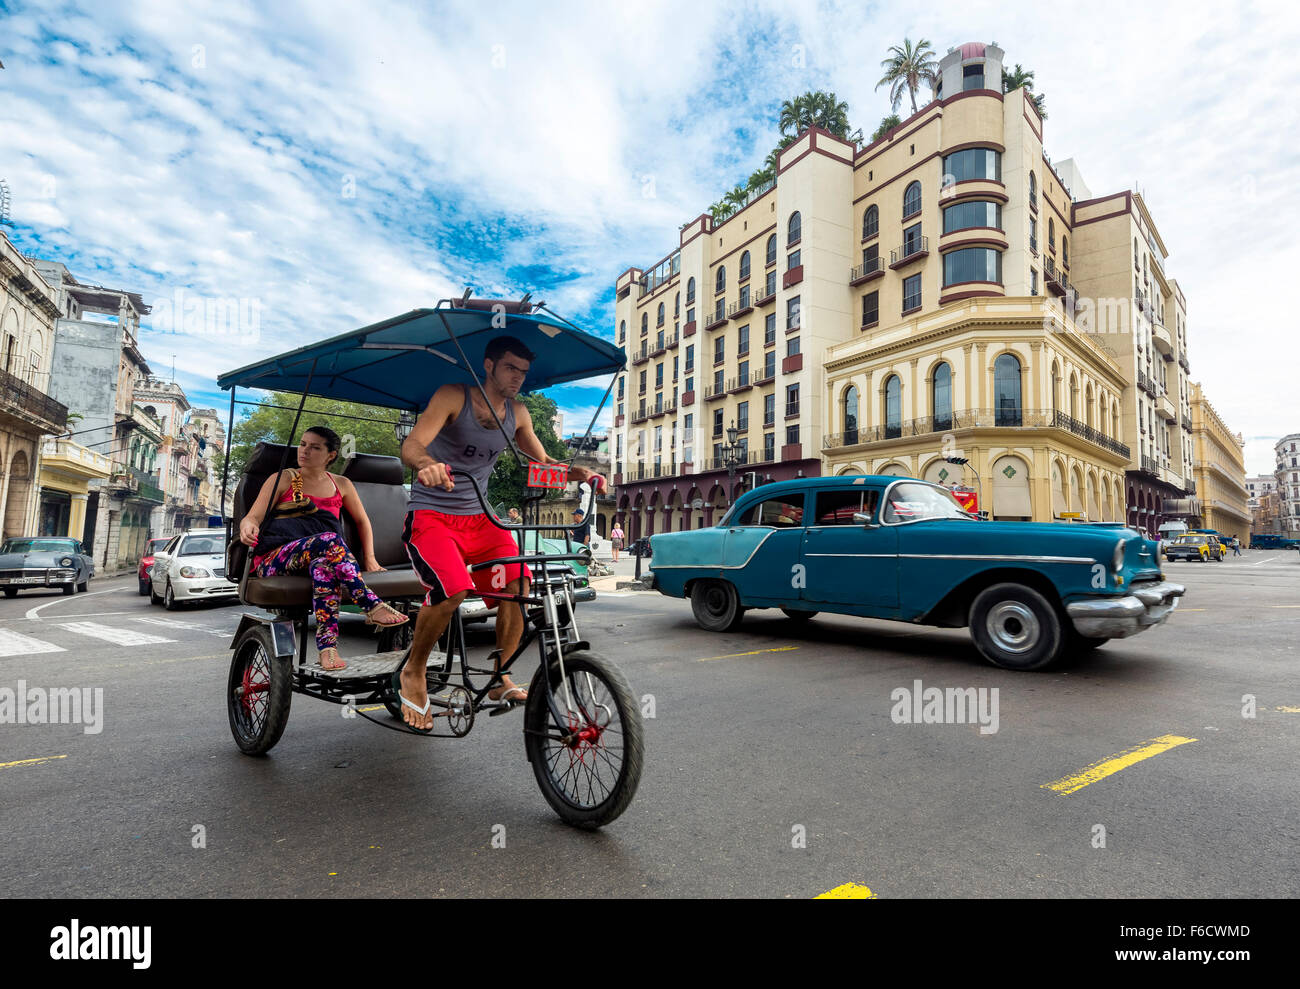 Oldtimer in the streetscape, pedicab, people taxi on the street intersection near the Hotel Telegrafo, Street Scene, - Stock Image